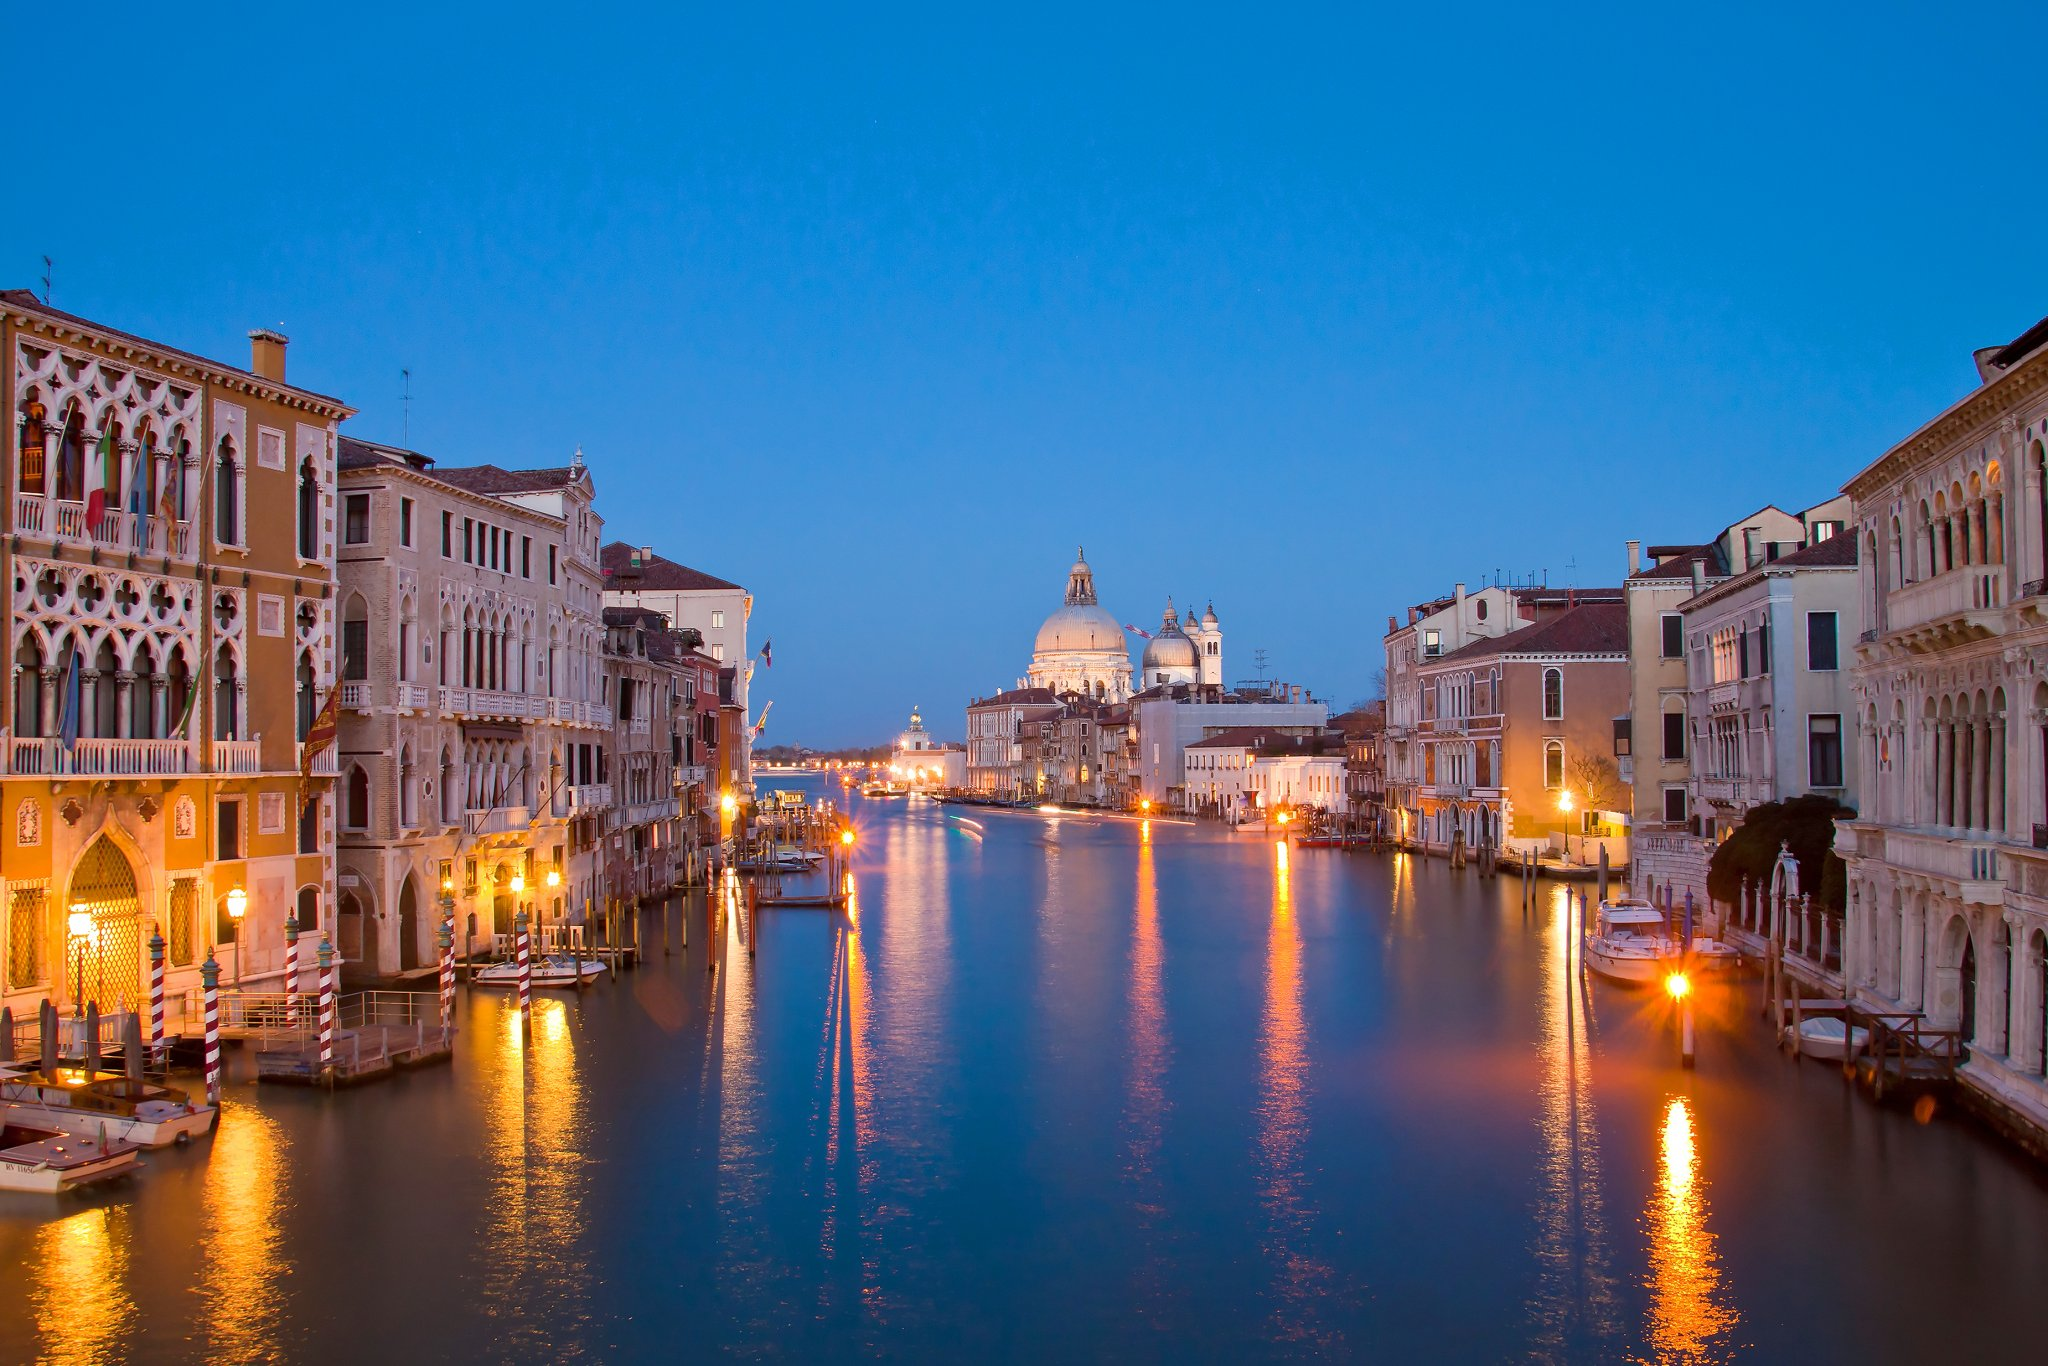 venice-view-lovely-576418-3700x2468